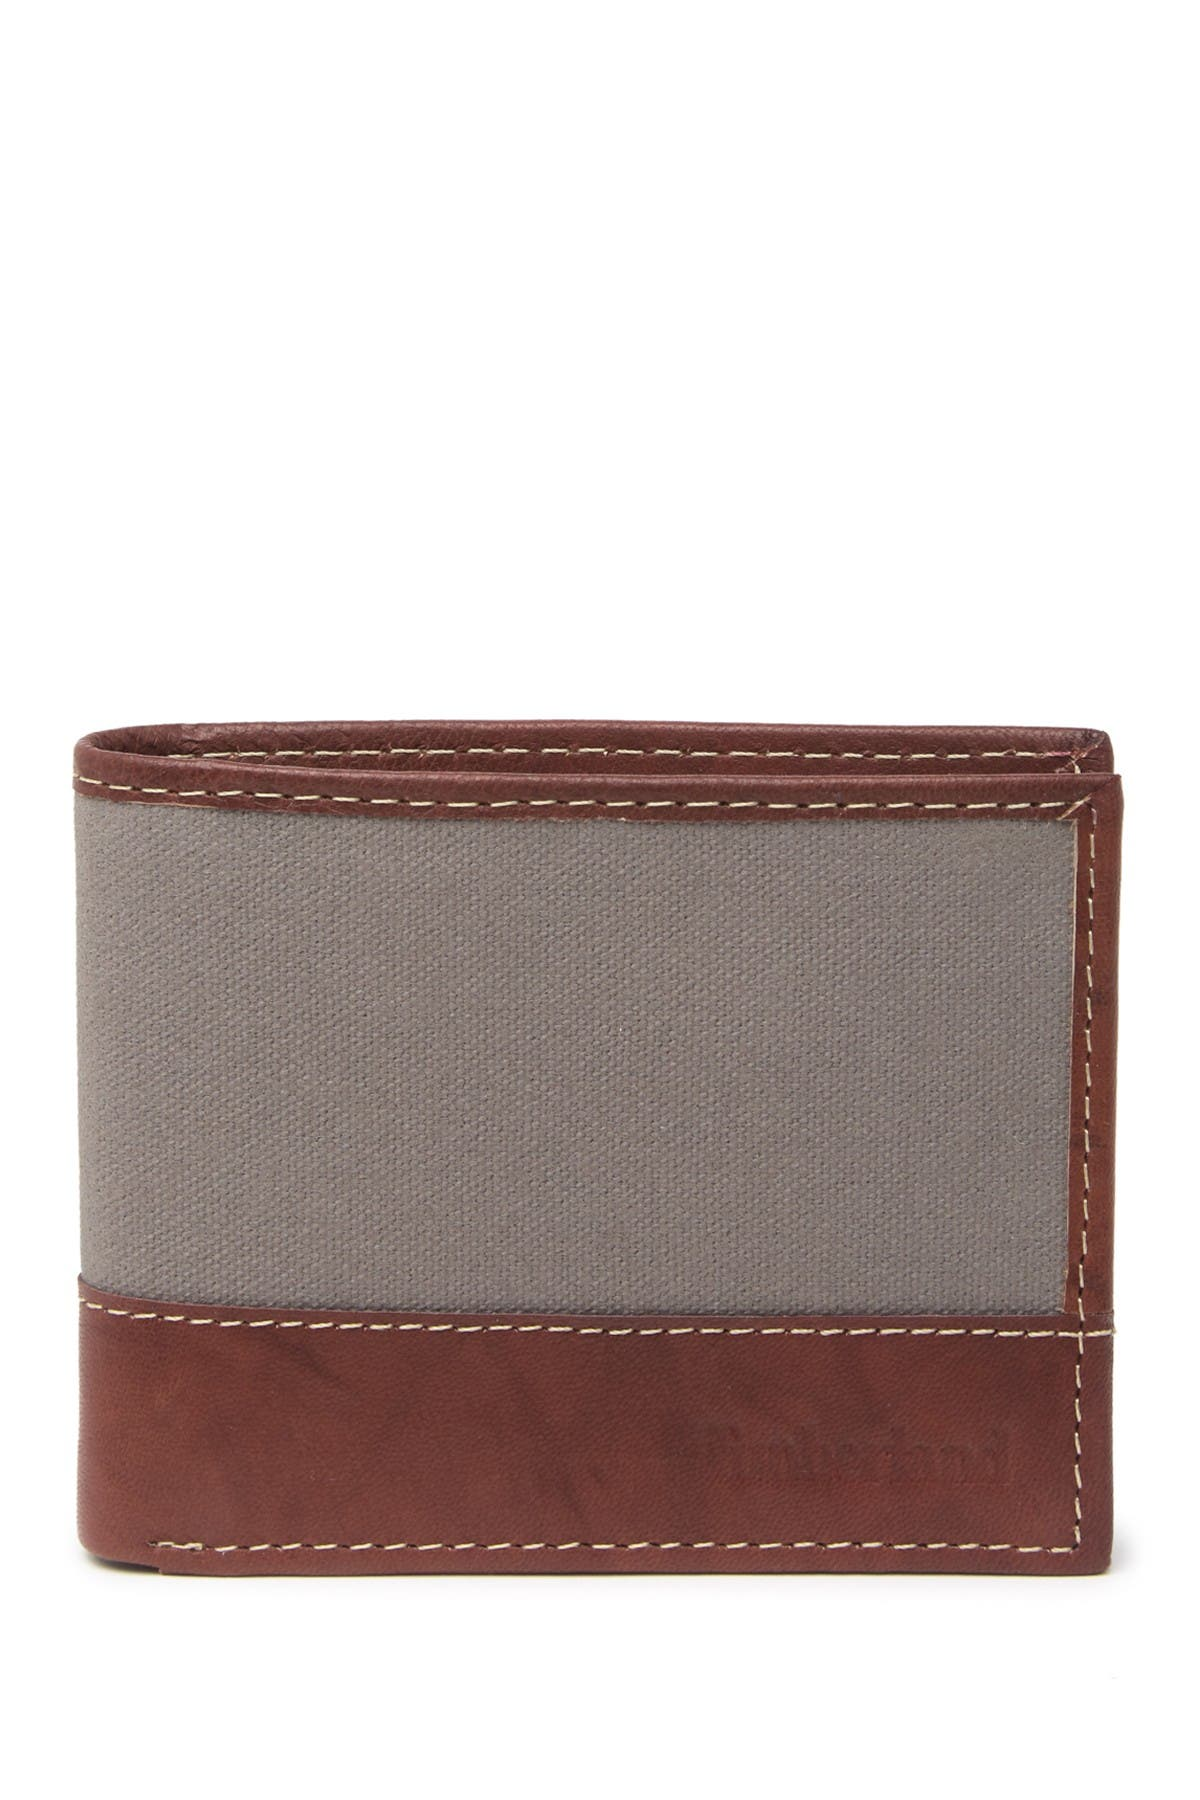 Image of Timberland Canvas & Leather Bifold Wallet